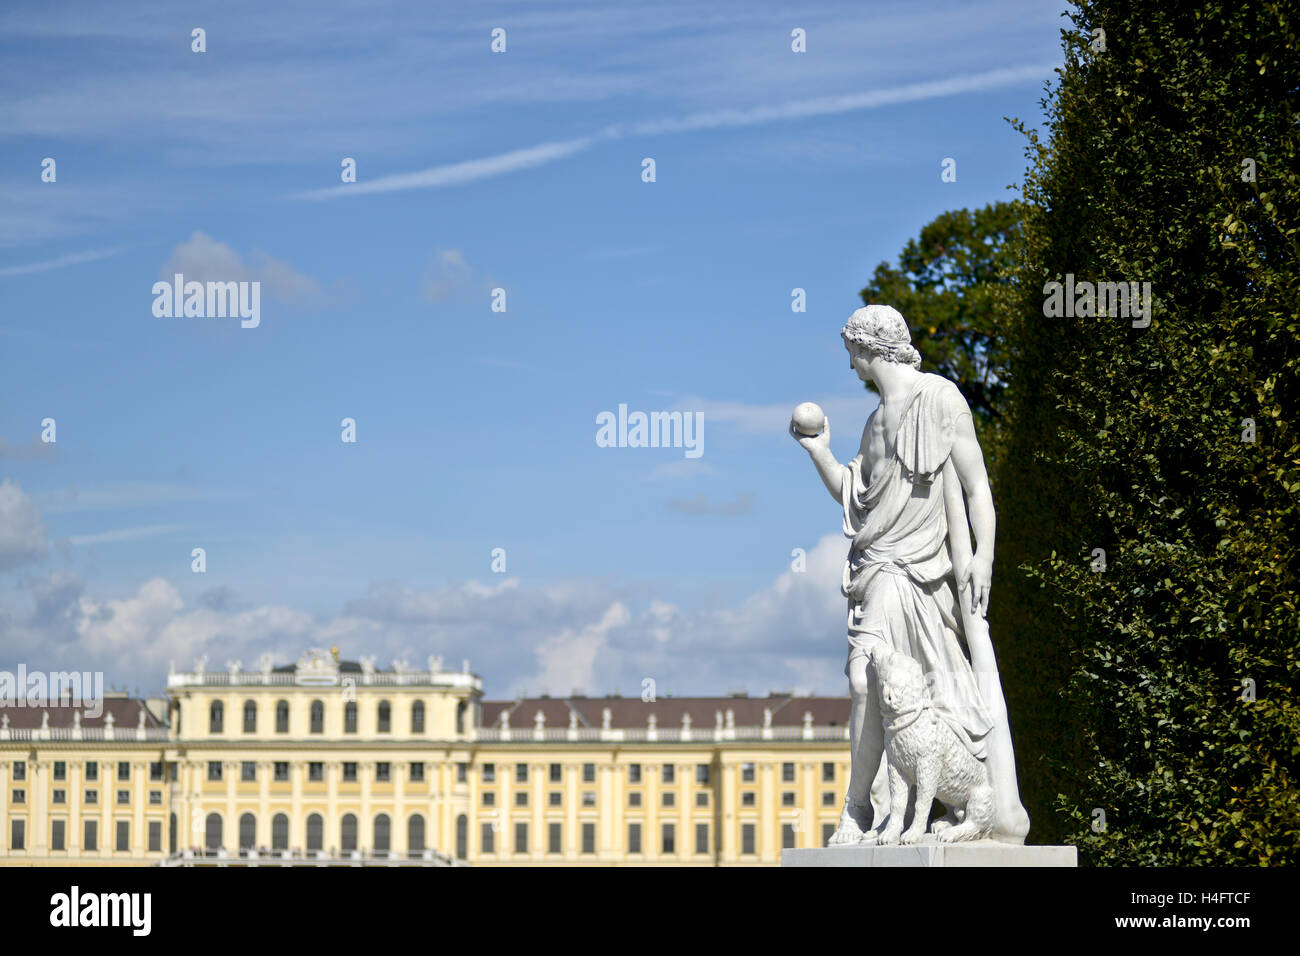 Sculpture at the Schönbrunn Palace garden. Vienna, Austria - Stock Image